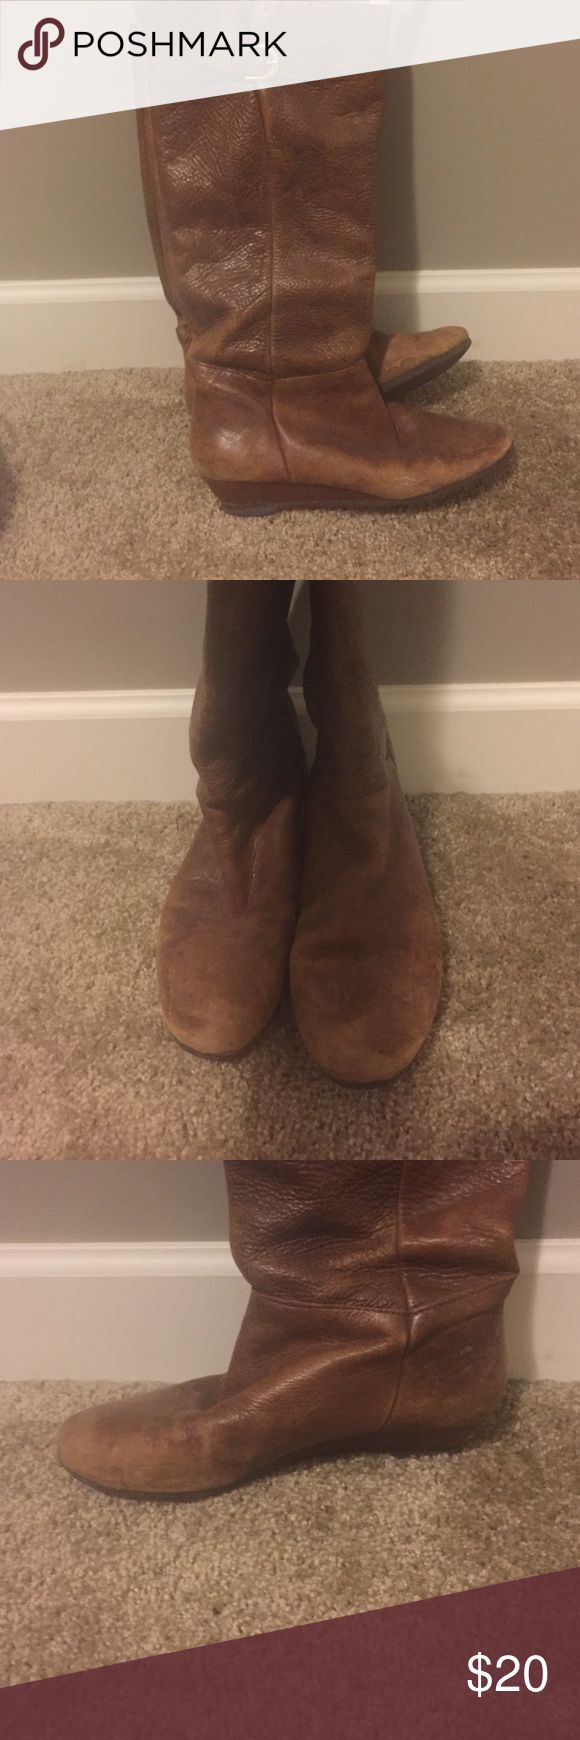 Steve Madden boots Great fall and winter boot. There is some wear and tear but could be easily cleaned up by a cobbler! Steve Madden Shoes Heeled Boots